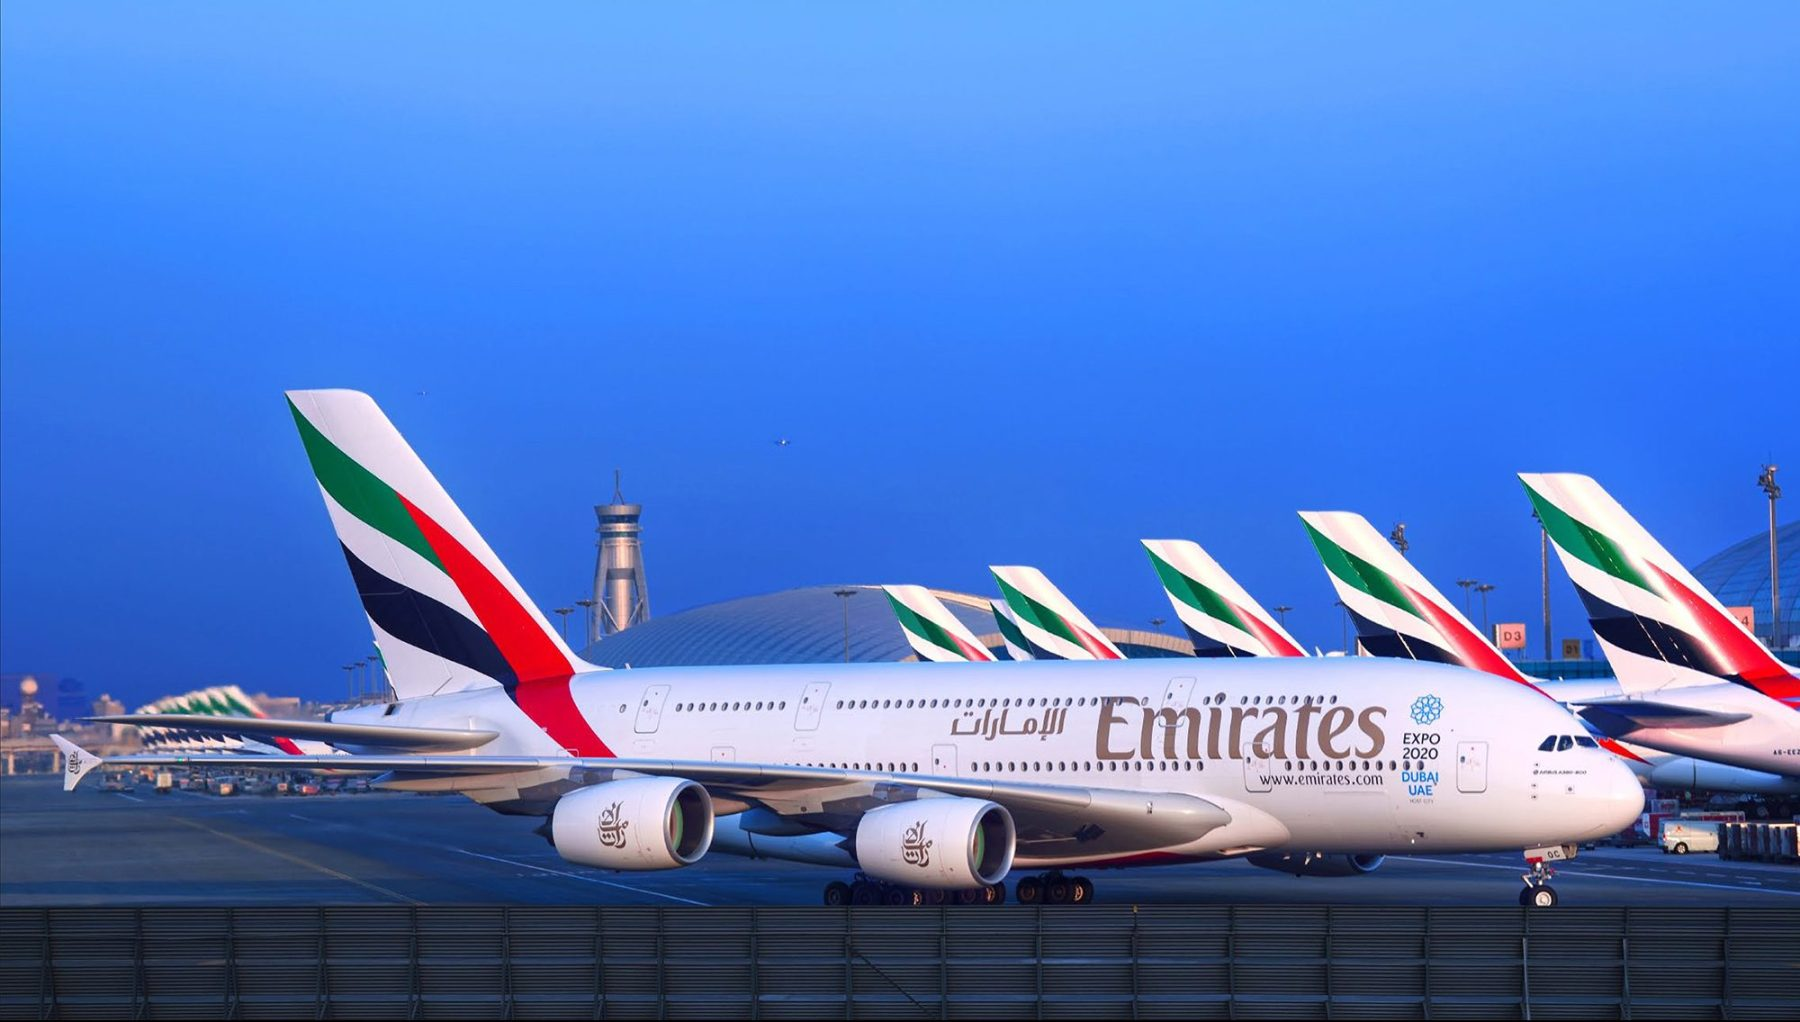 (Emirates Airlines)